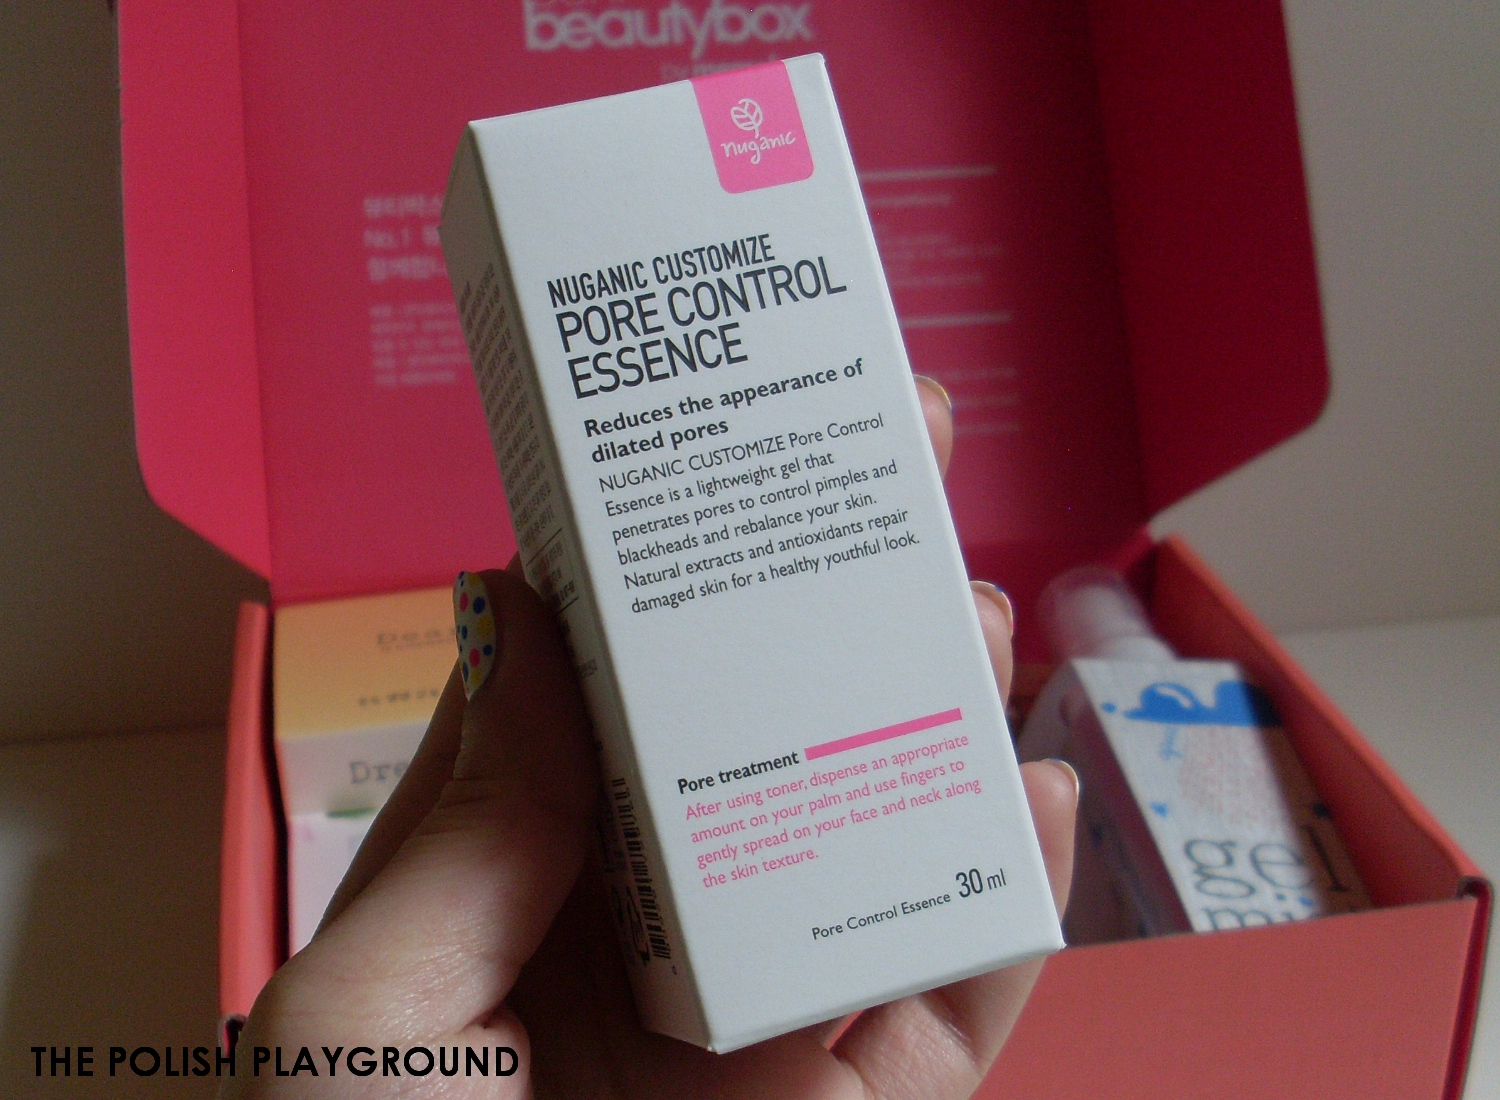 Memebox Luckybox #1 Unboxing and First Impressions - Nuganic Customize Pore Control Essence